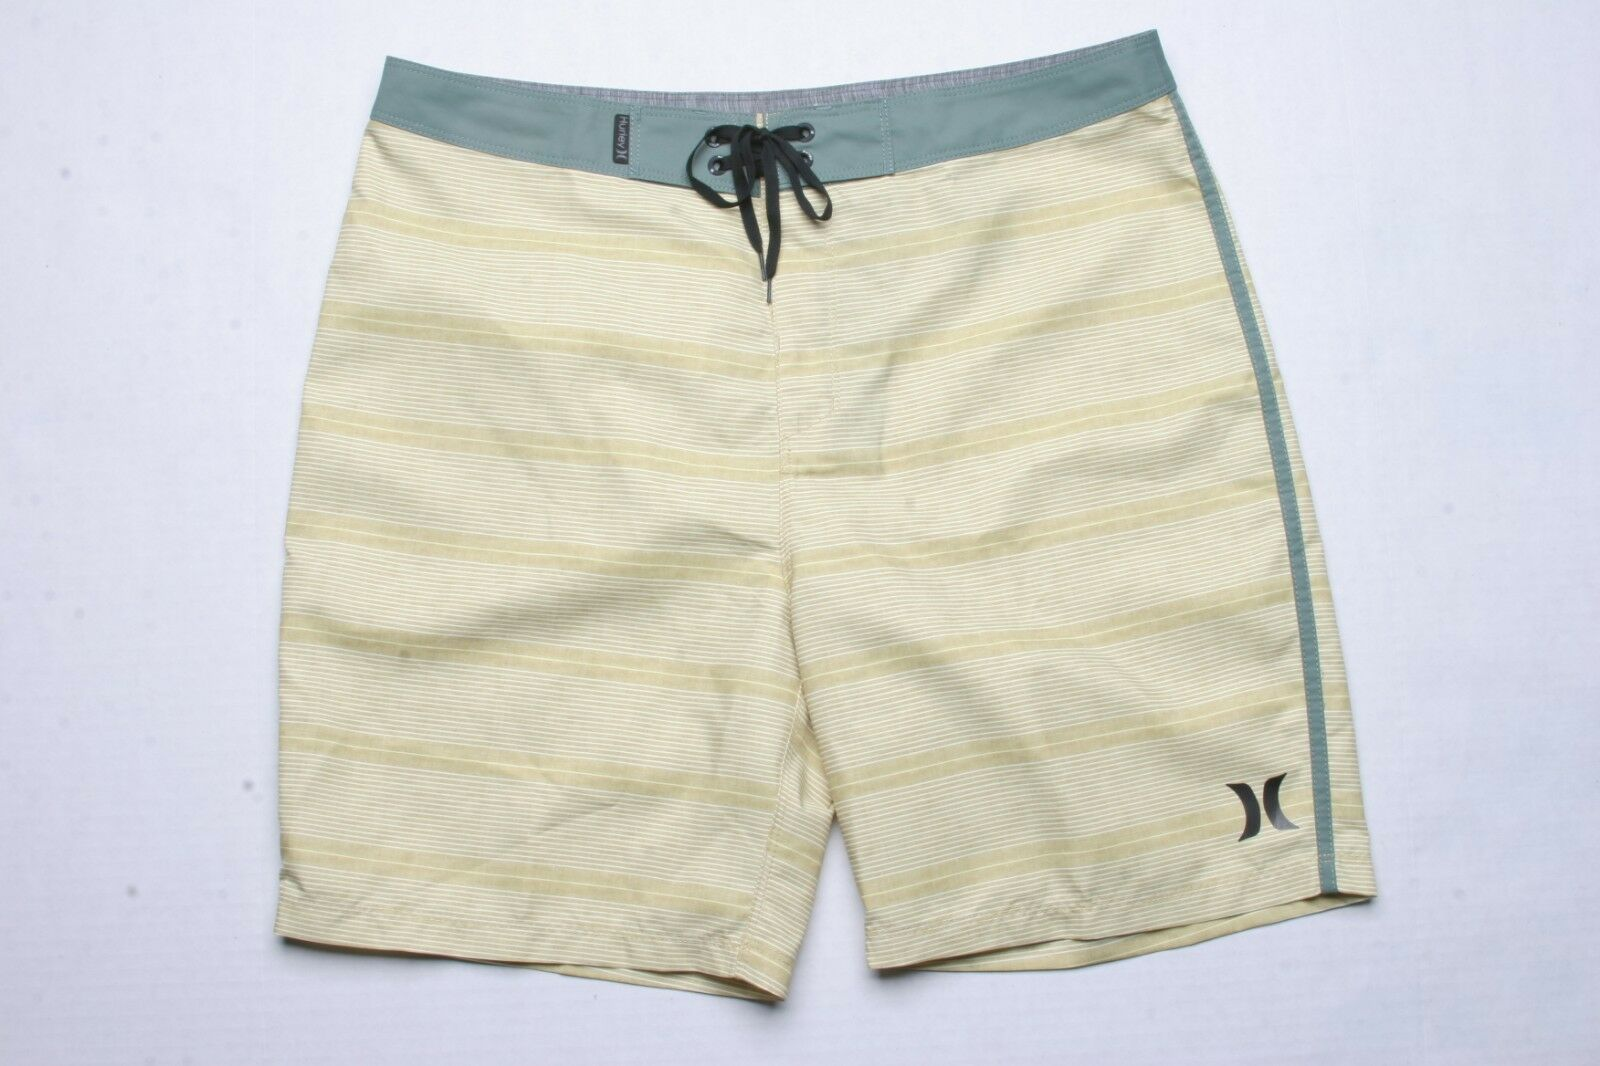 afda60850d73 Perdleton Beachside Boardshort (32) Yellowstone Hurley nyokhe21398 ...